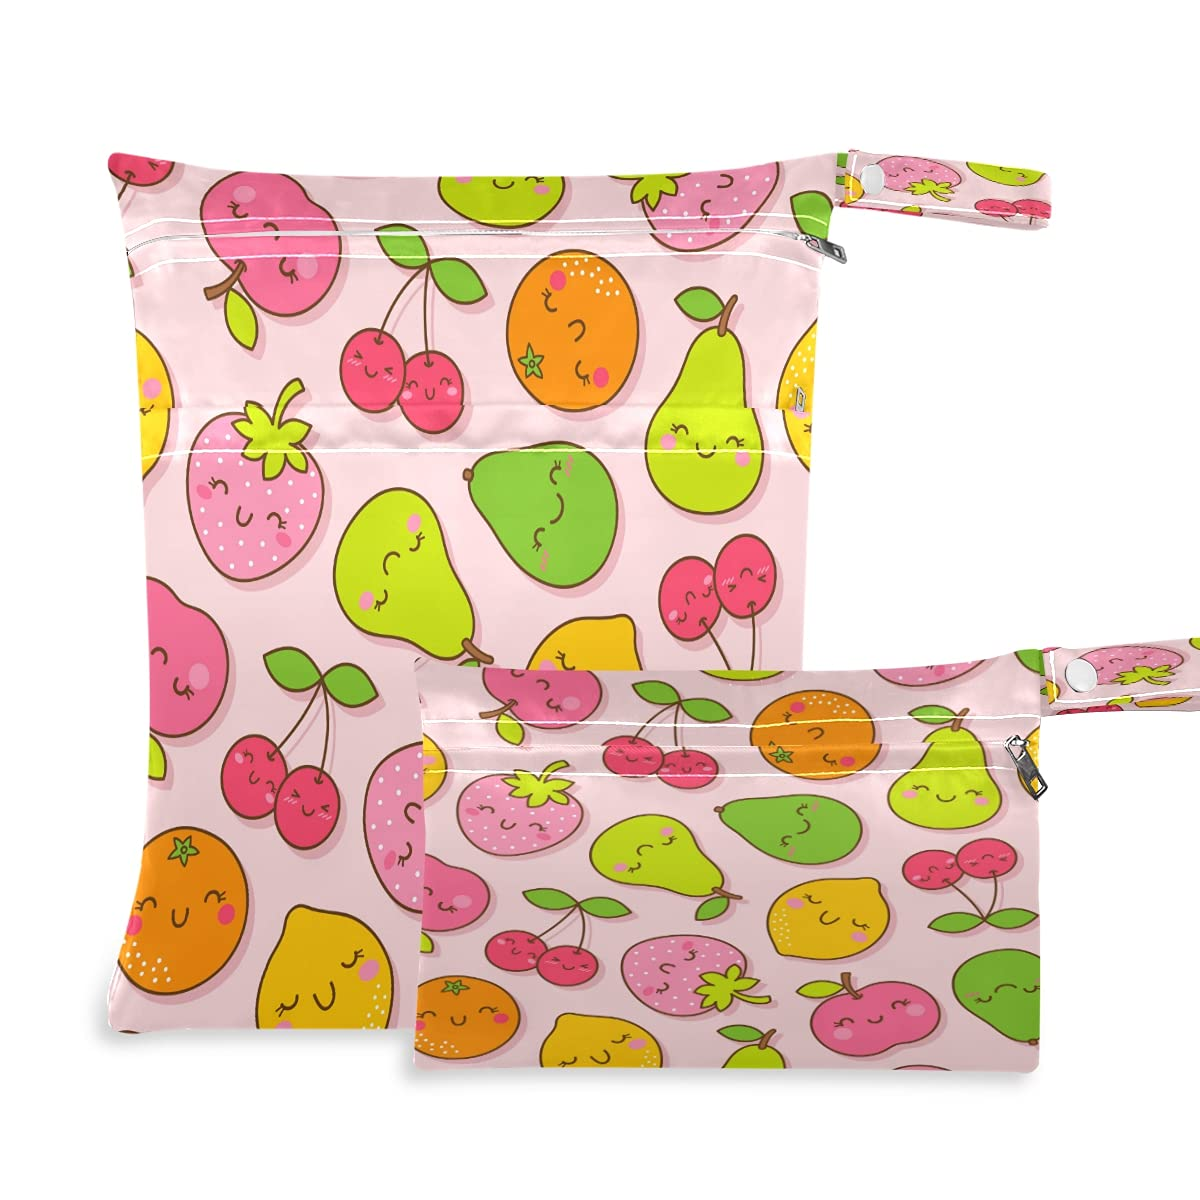 xigua 2 Pieces Fruit Baby Cloth New popularity Dry R Bags Ranking TOP6 Wet Waterproof Diaper